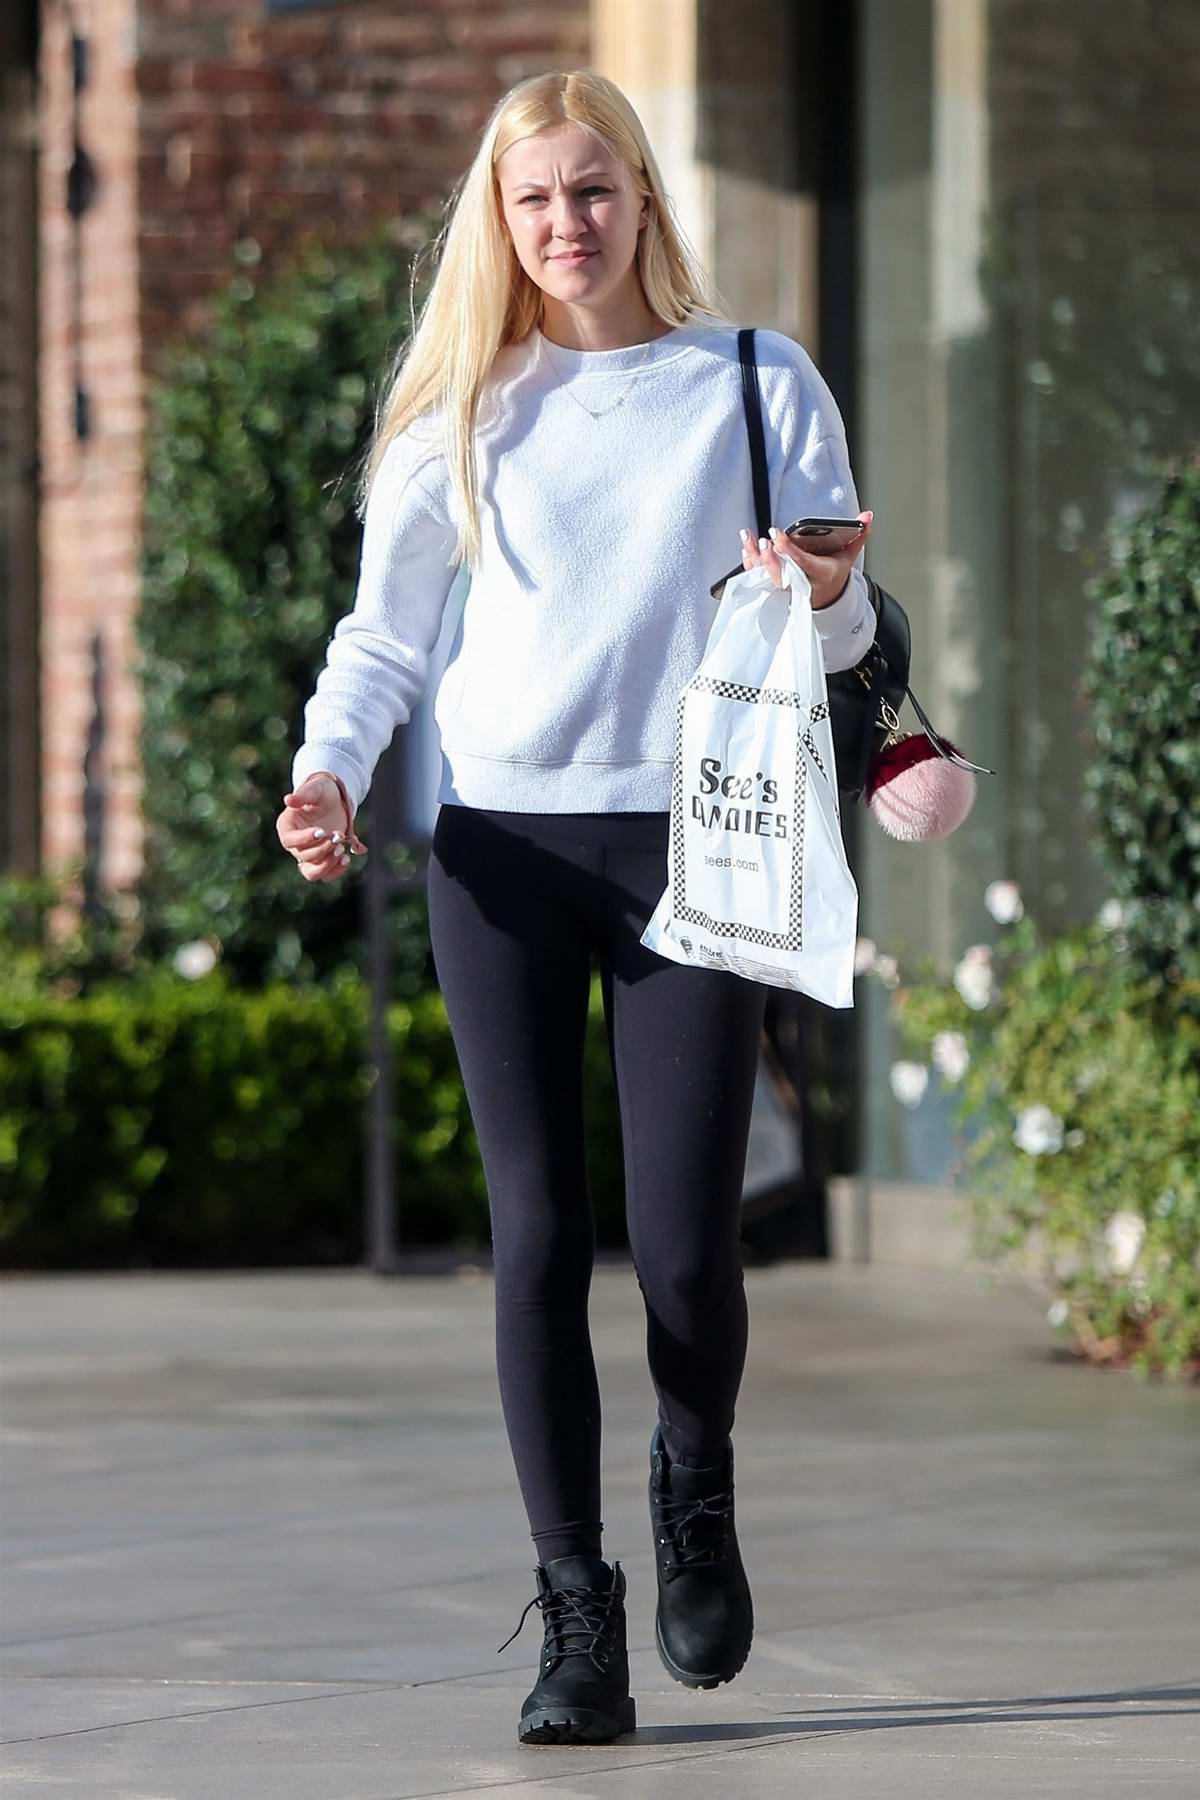 Ava Sambora keeps it casual in a white sweatshirt and black leggings while stopping by to pick up some candy at See's Candies in Los Angeles